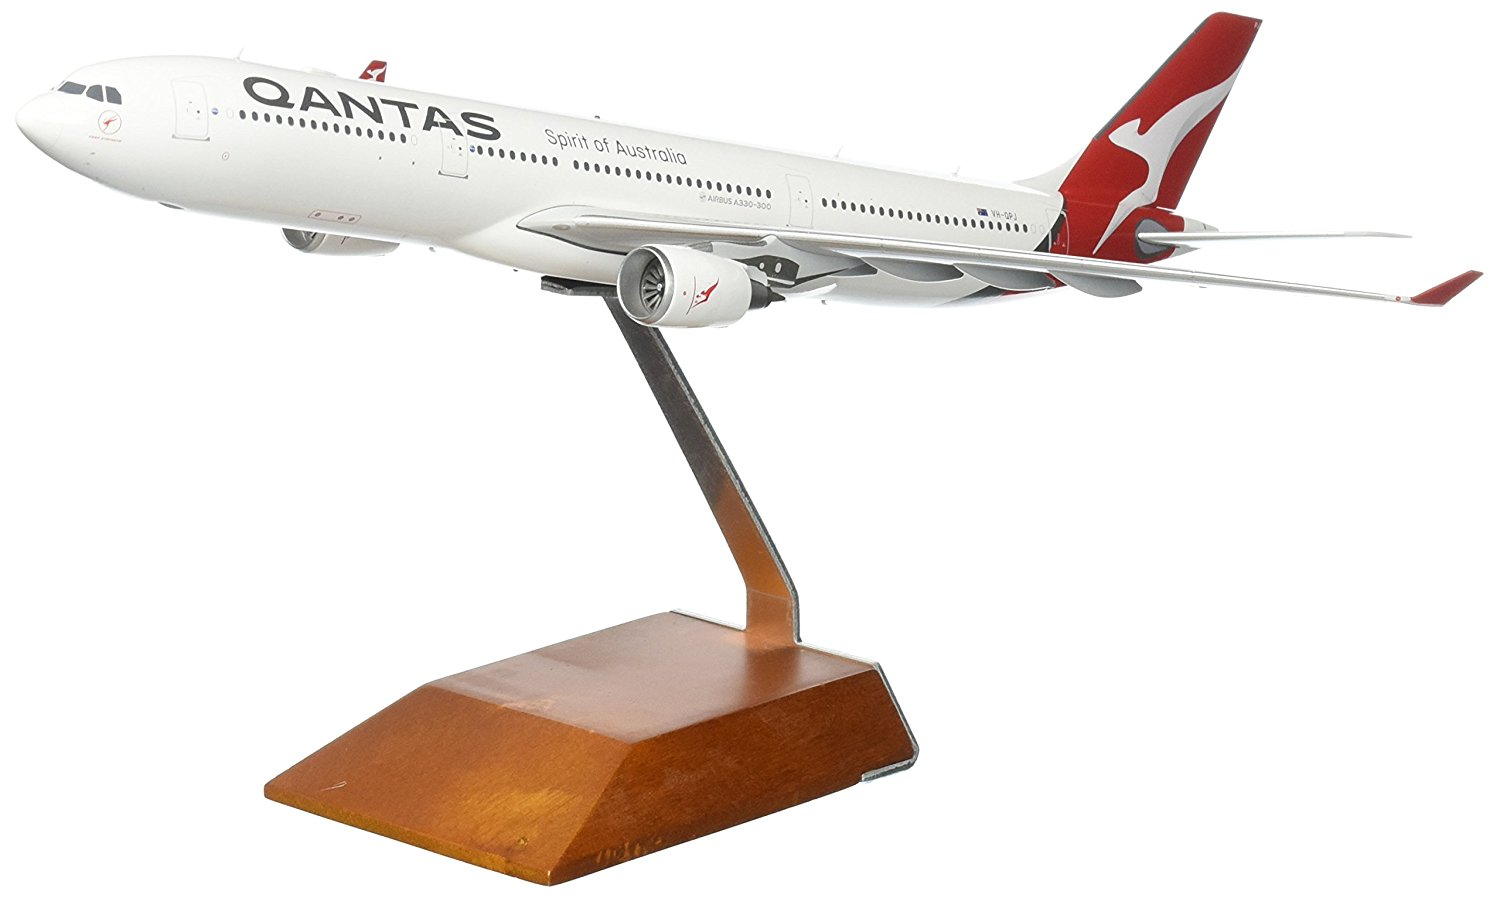 Gemini200 Qantas Airways A330-300 New 2016 Livery VH-Qpj 1:200 Diecast Model Airplane by Gemini200 1 200